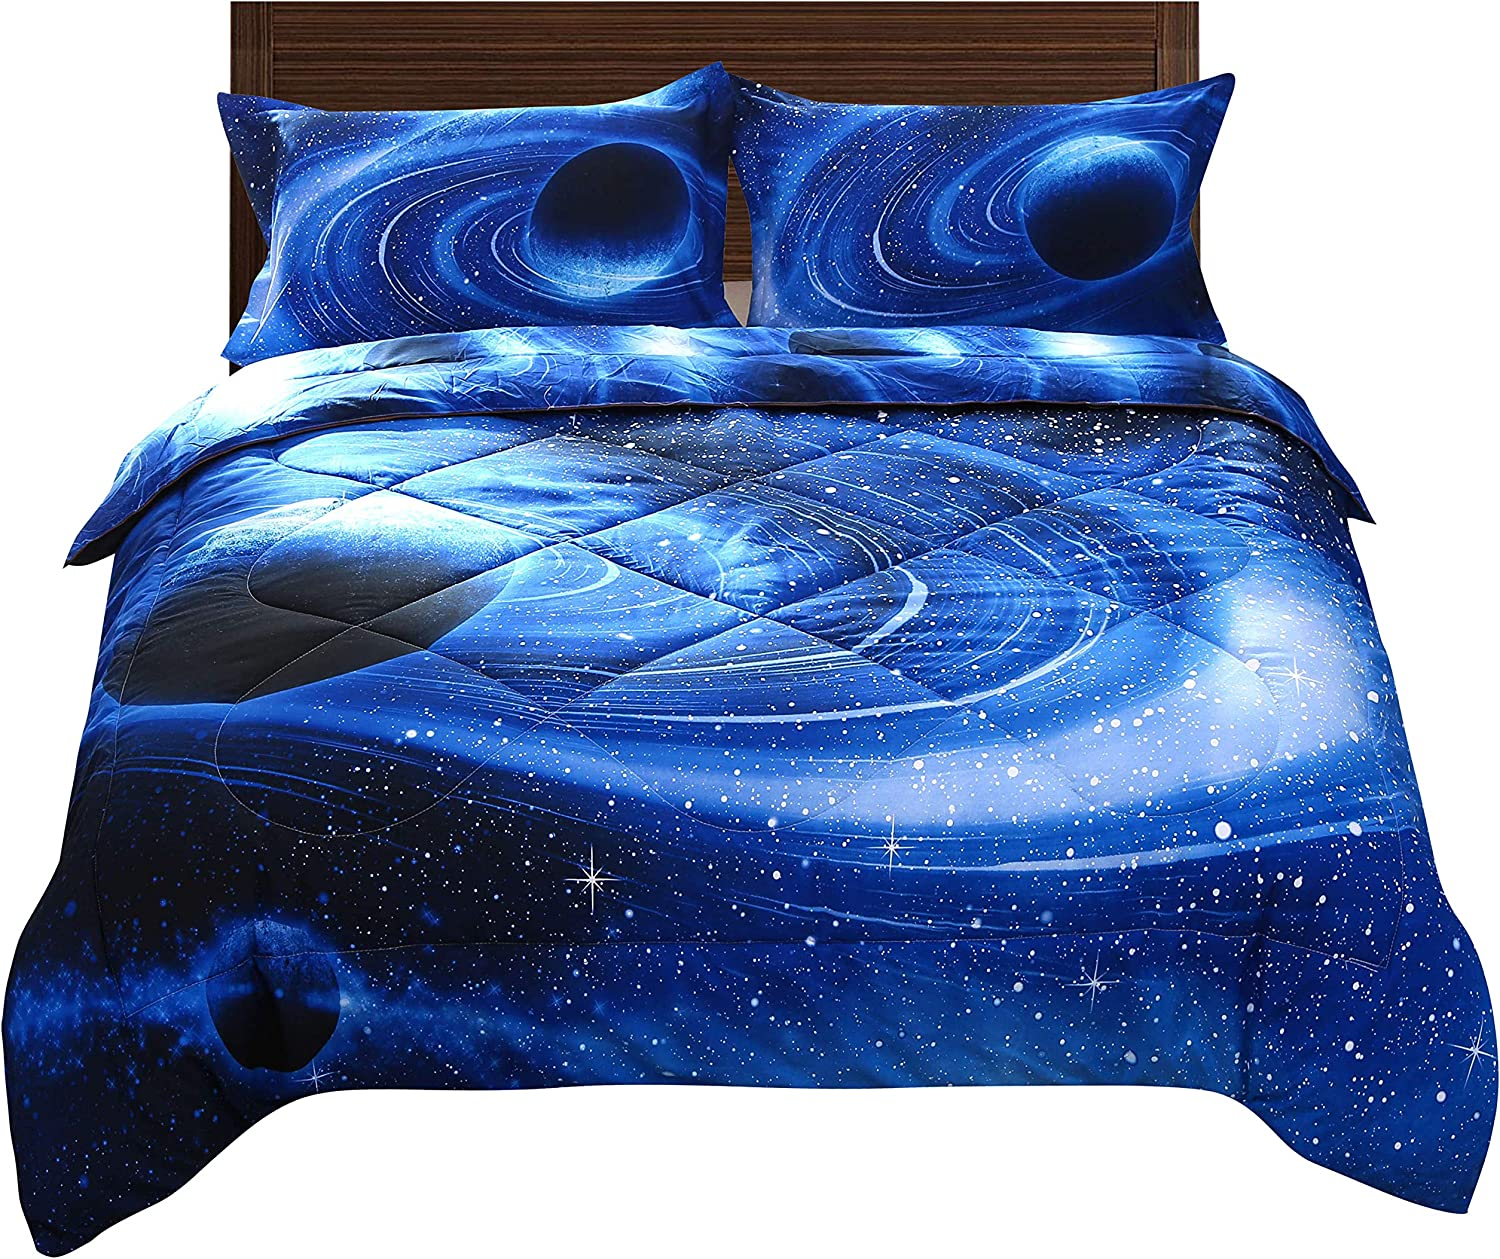 ENJOHOS 3D Blue Galaxy Outer Space Comforter Set for Kids Full Size Universe Quilt Bedspread Bedding Gift 3 PCS